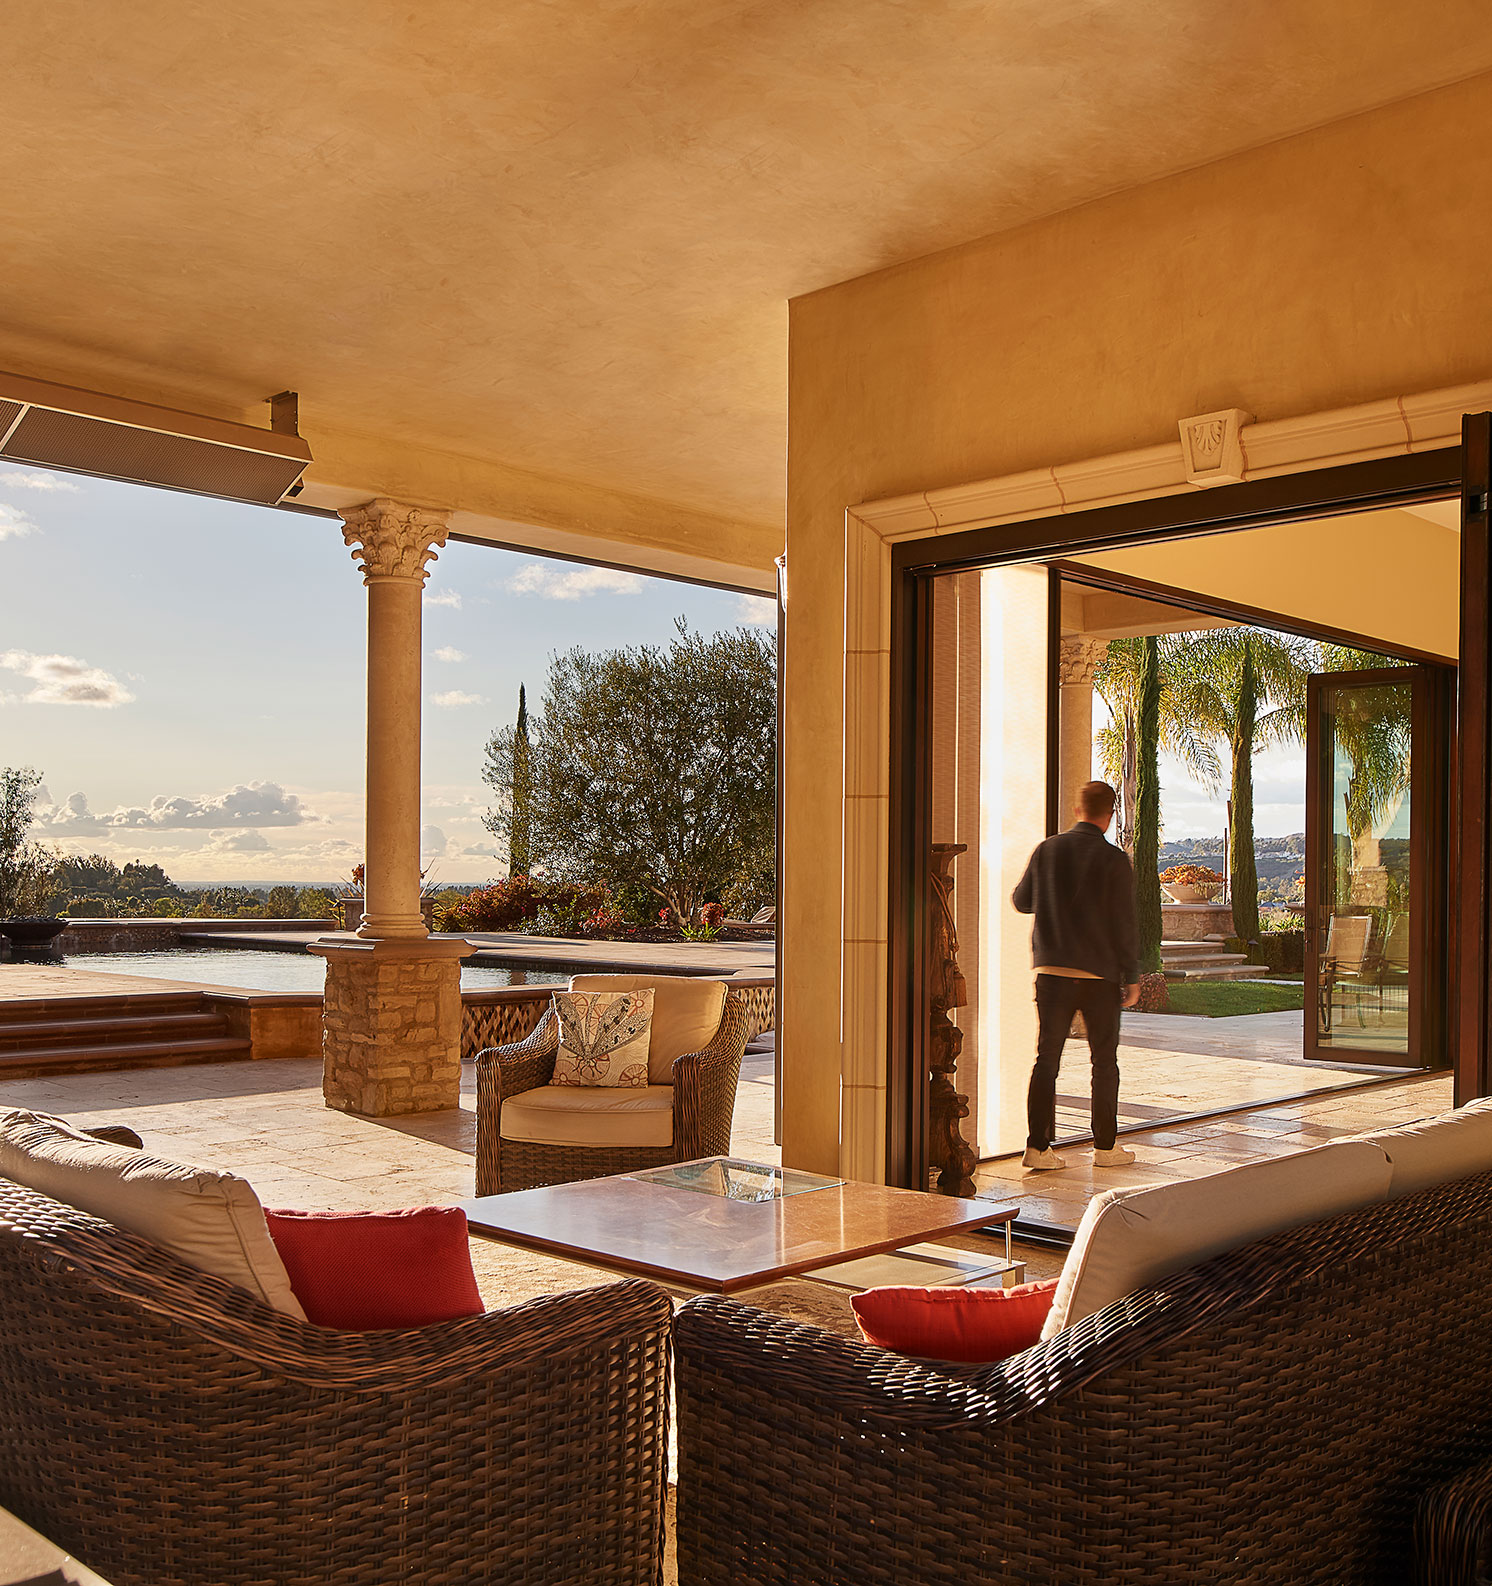 The Folding Door Store can install sliding doors or screen doors at your home to make enjoying the outdoors even easier.